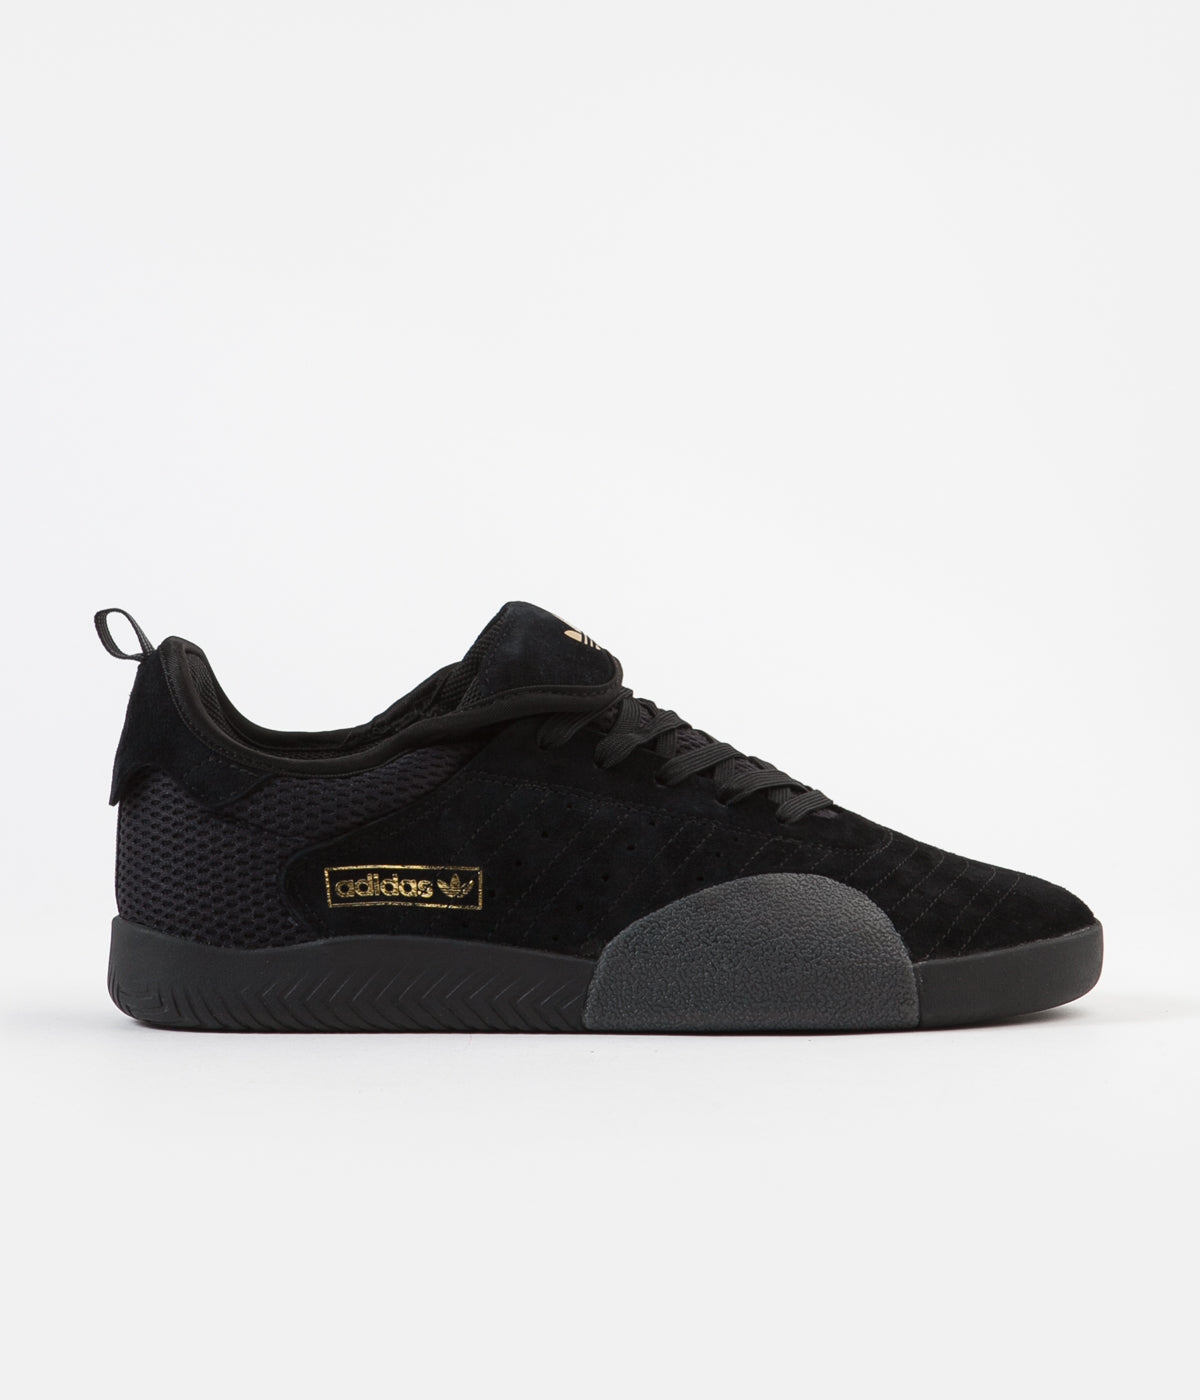 Adidas 3ST.003 Shoes - Core Black / White / Gold Metallic